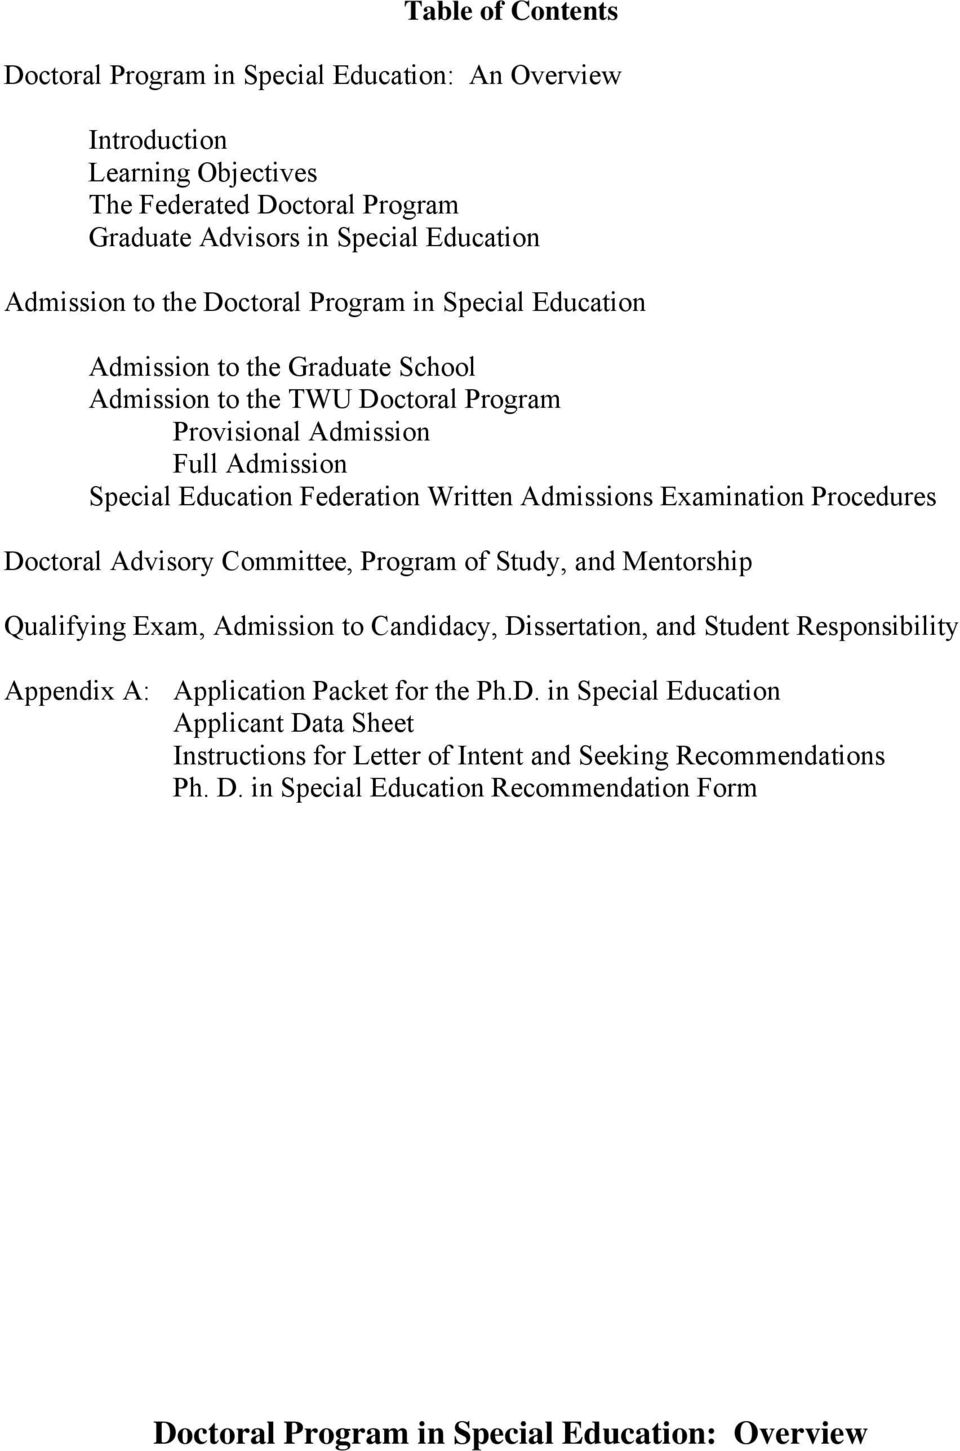 Procedures Doctoral Advisory Committee, Program of Study, and Mentorship Qualifying Exam, Admission to Candidacy, Dissertation, and Student Responsibility Appendix A: Application Packet for the Ph.D. in Special Education Applicant Data Sheet Instructions for Letter of Intent and Seeking Recommendations Ph.